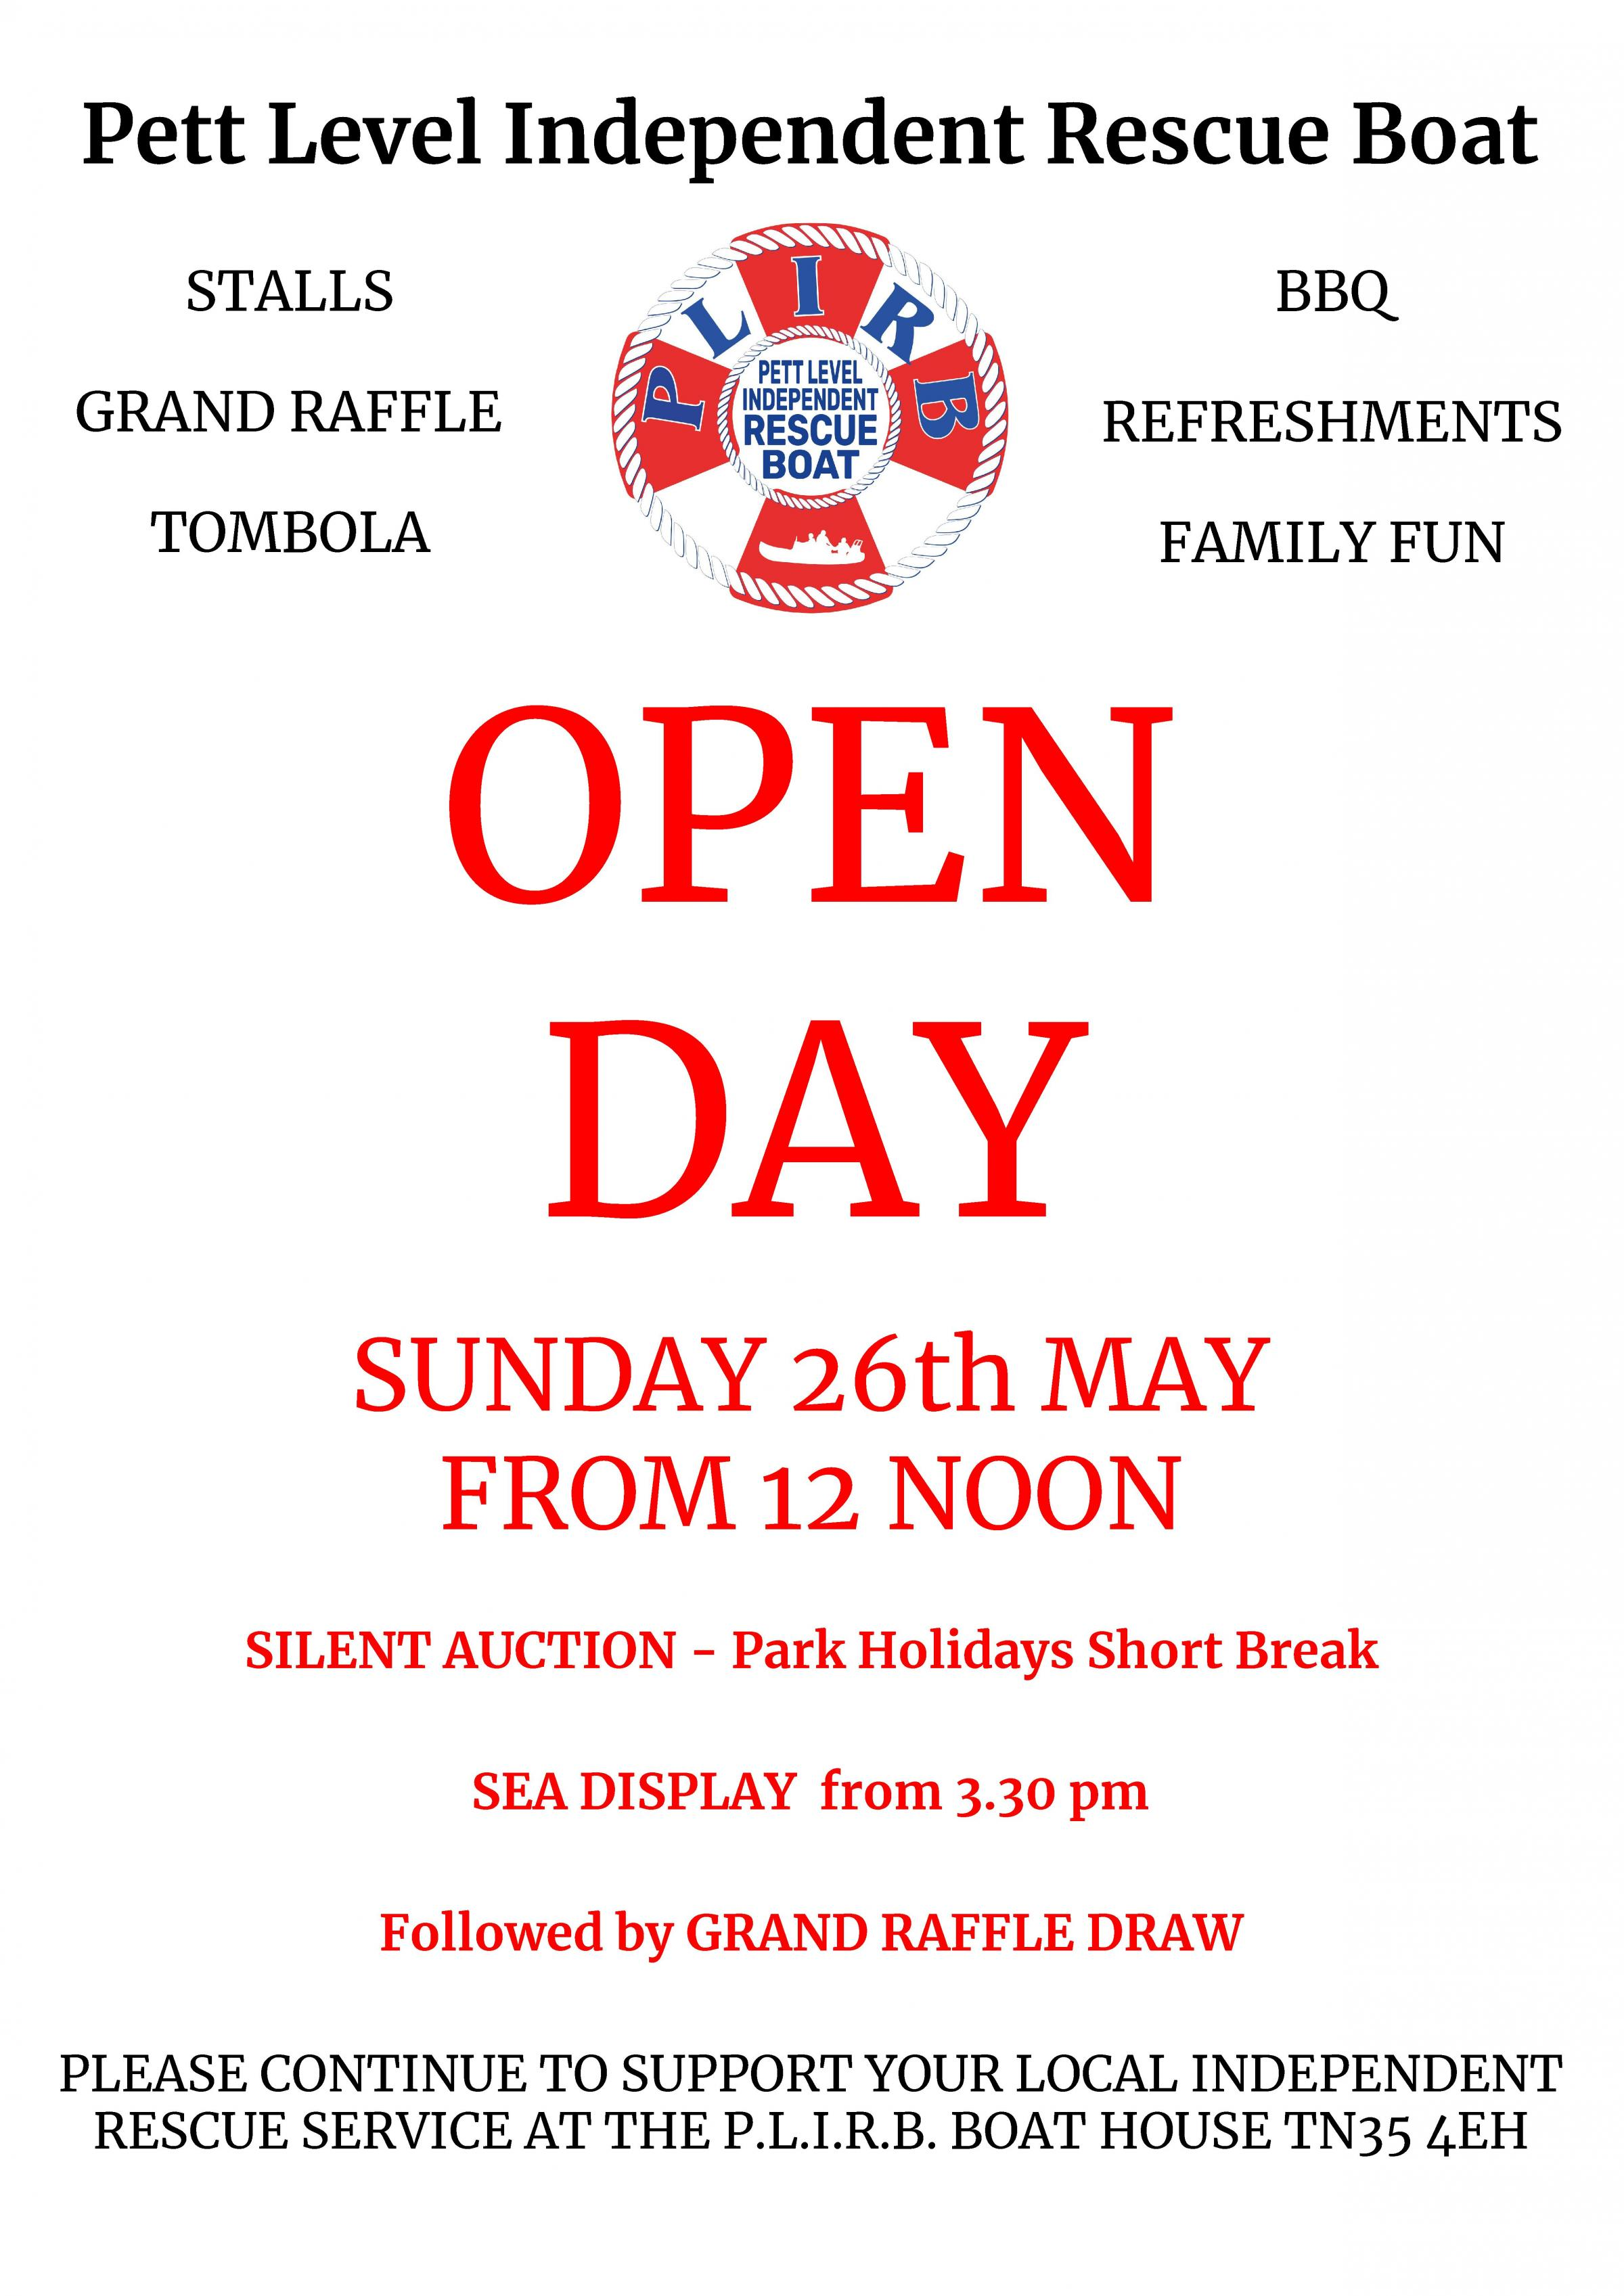 Pett Level Independent Rescue Boat Open Day Fundraiser